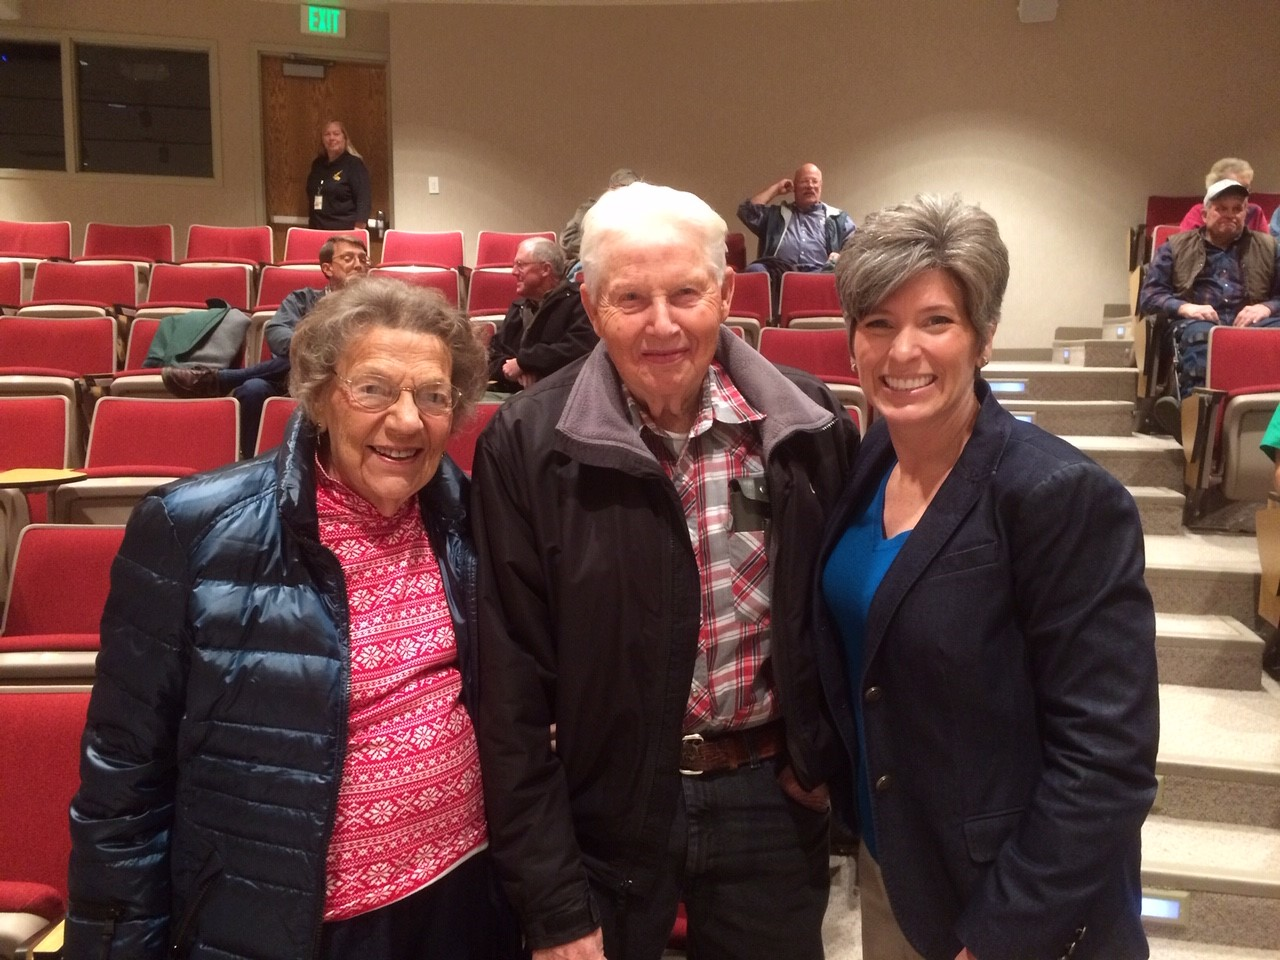 Sally and Stanley Oswald at an event with Senator Joni Ernst. Photo credit: Tom Oswald